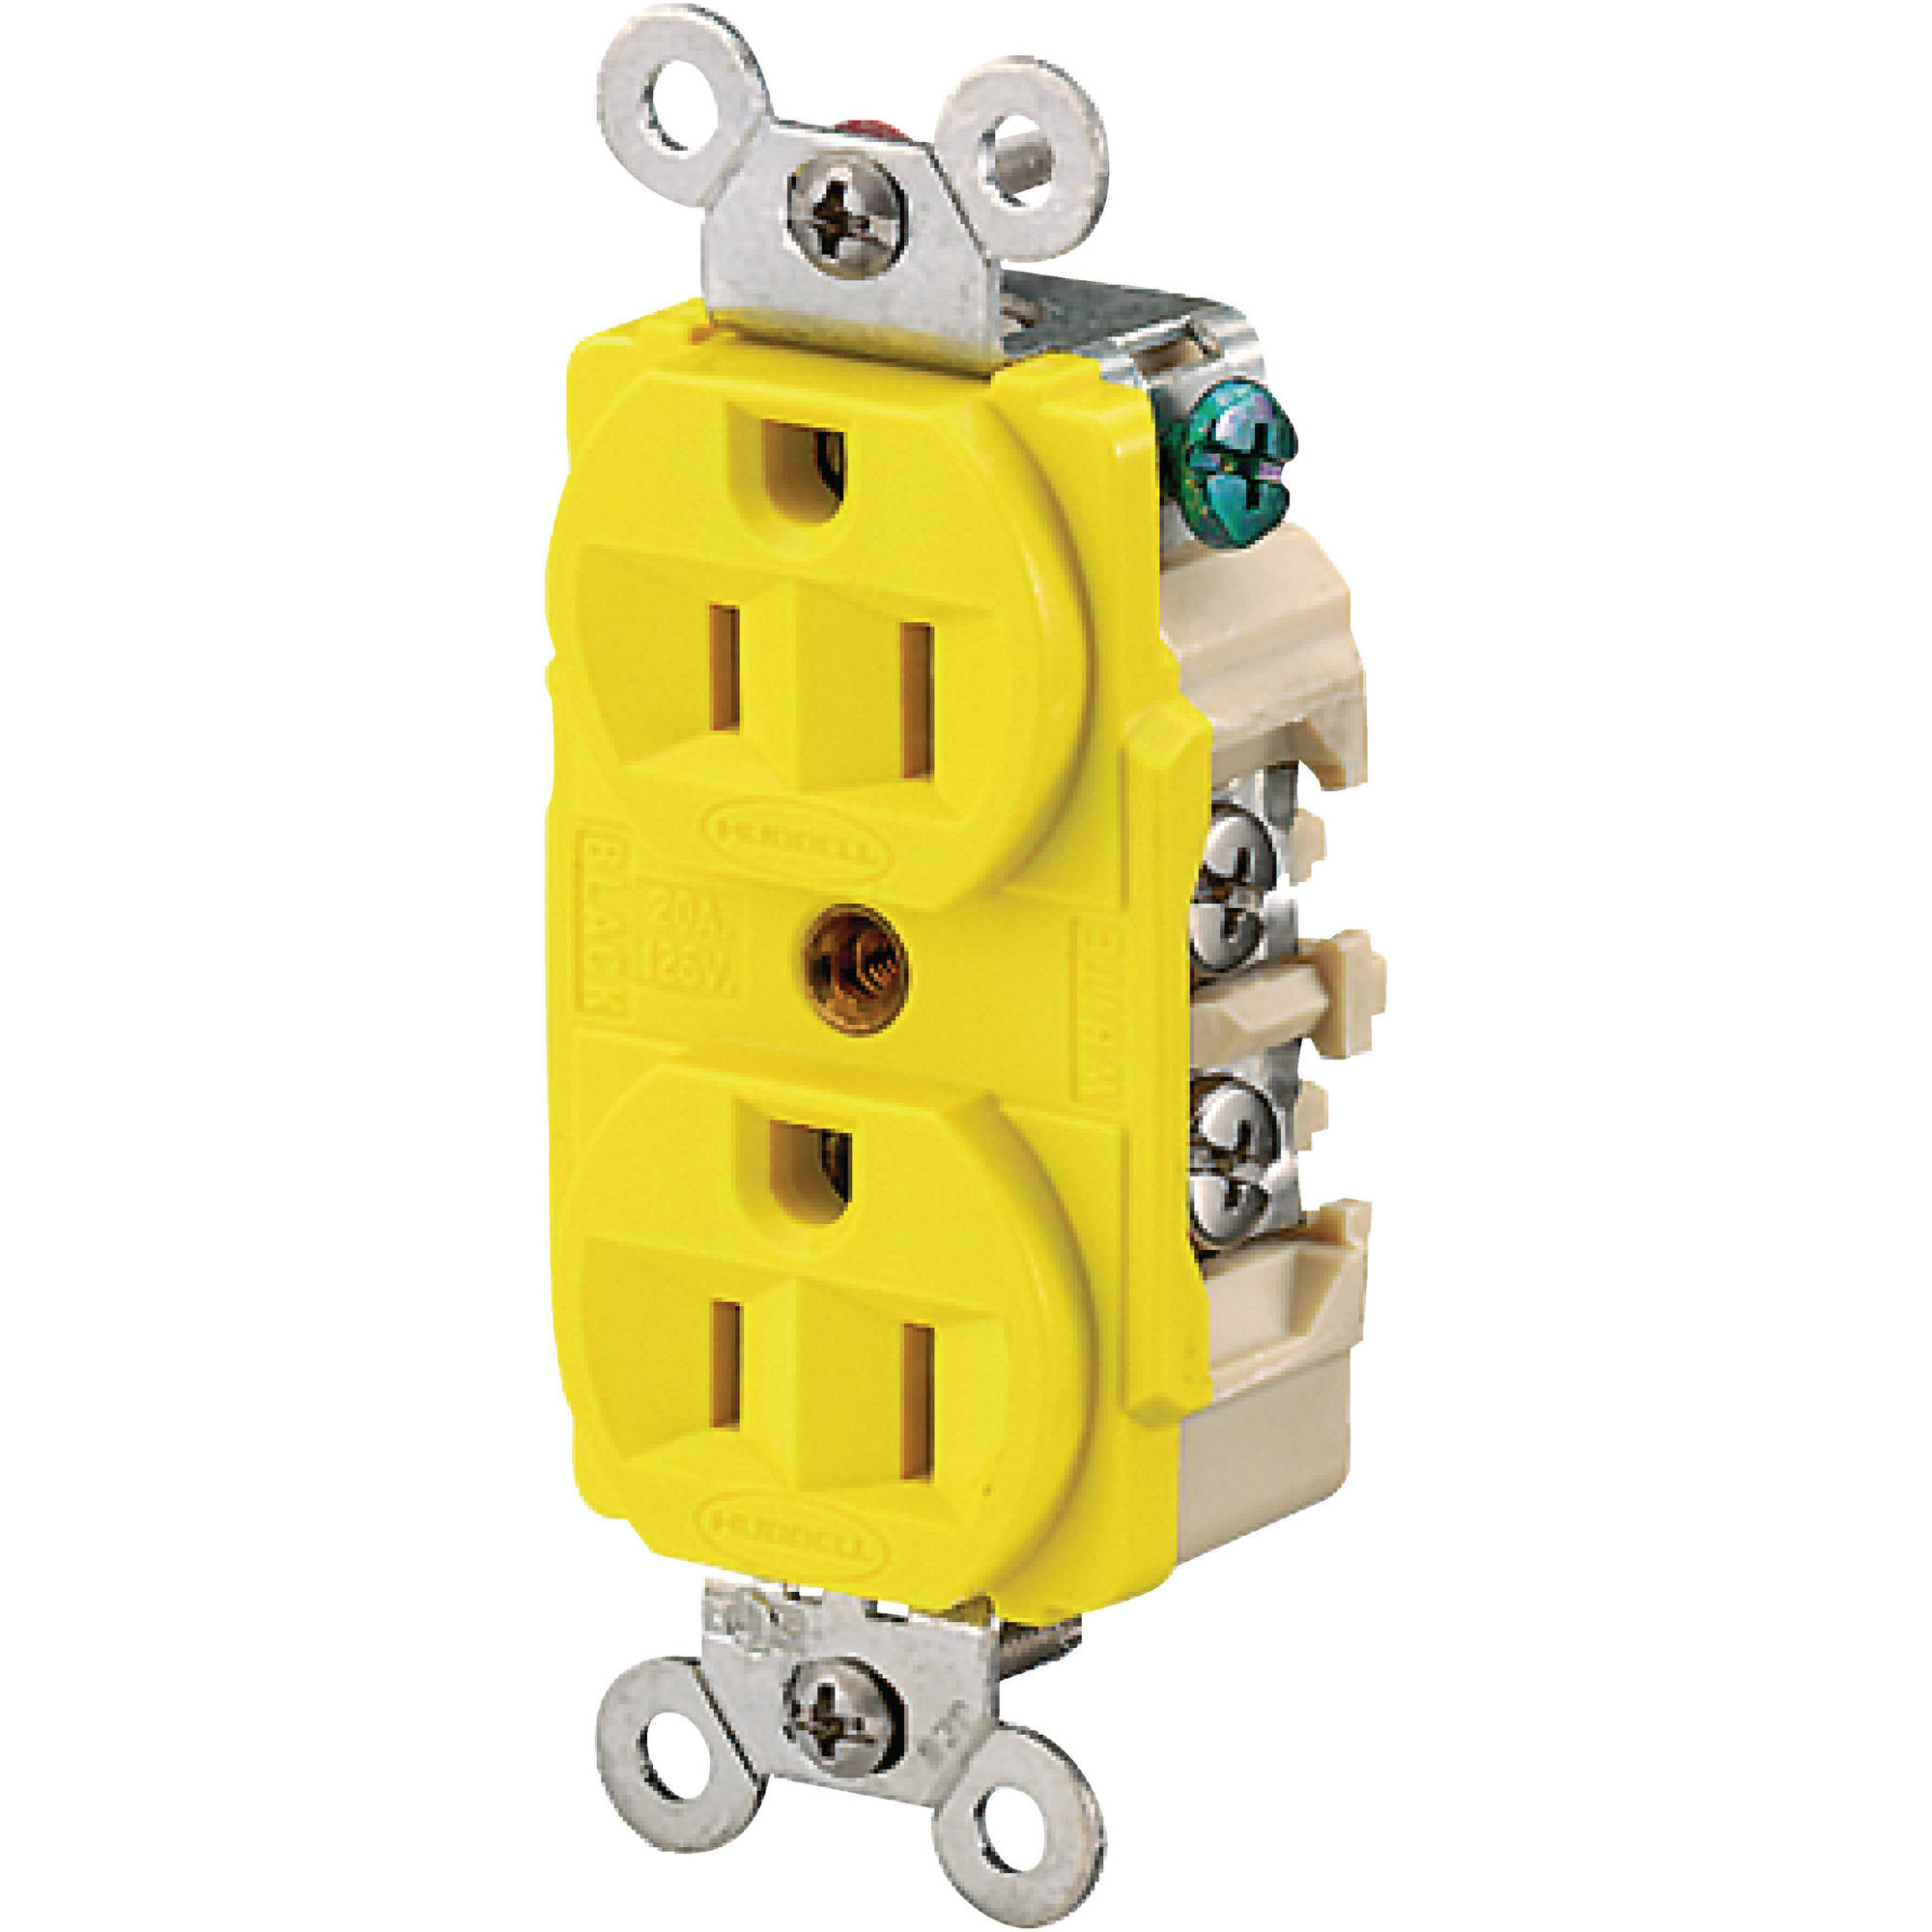 Hubbell HBL52CM62 Yellow 15A 125V Heat & Corrosion Resistant Duplex Receptacle